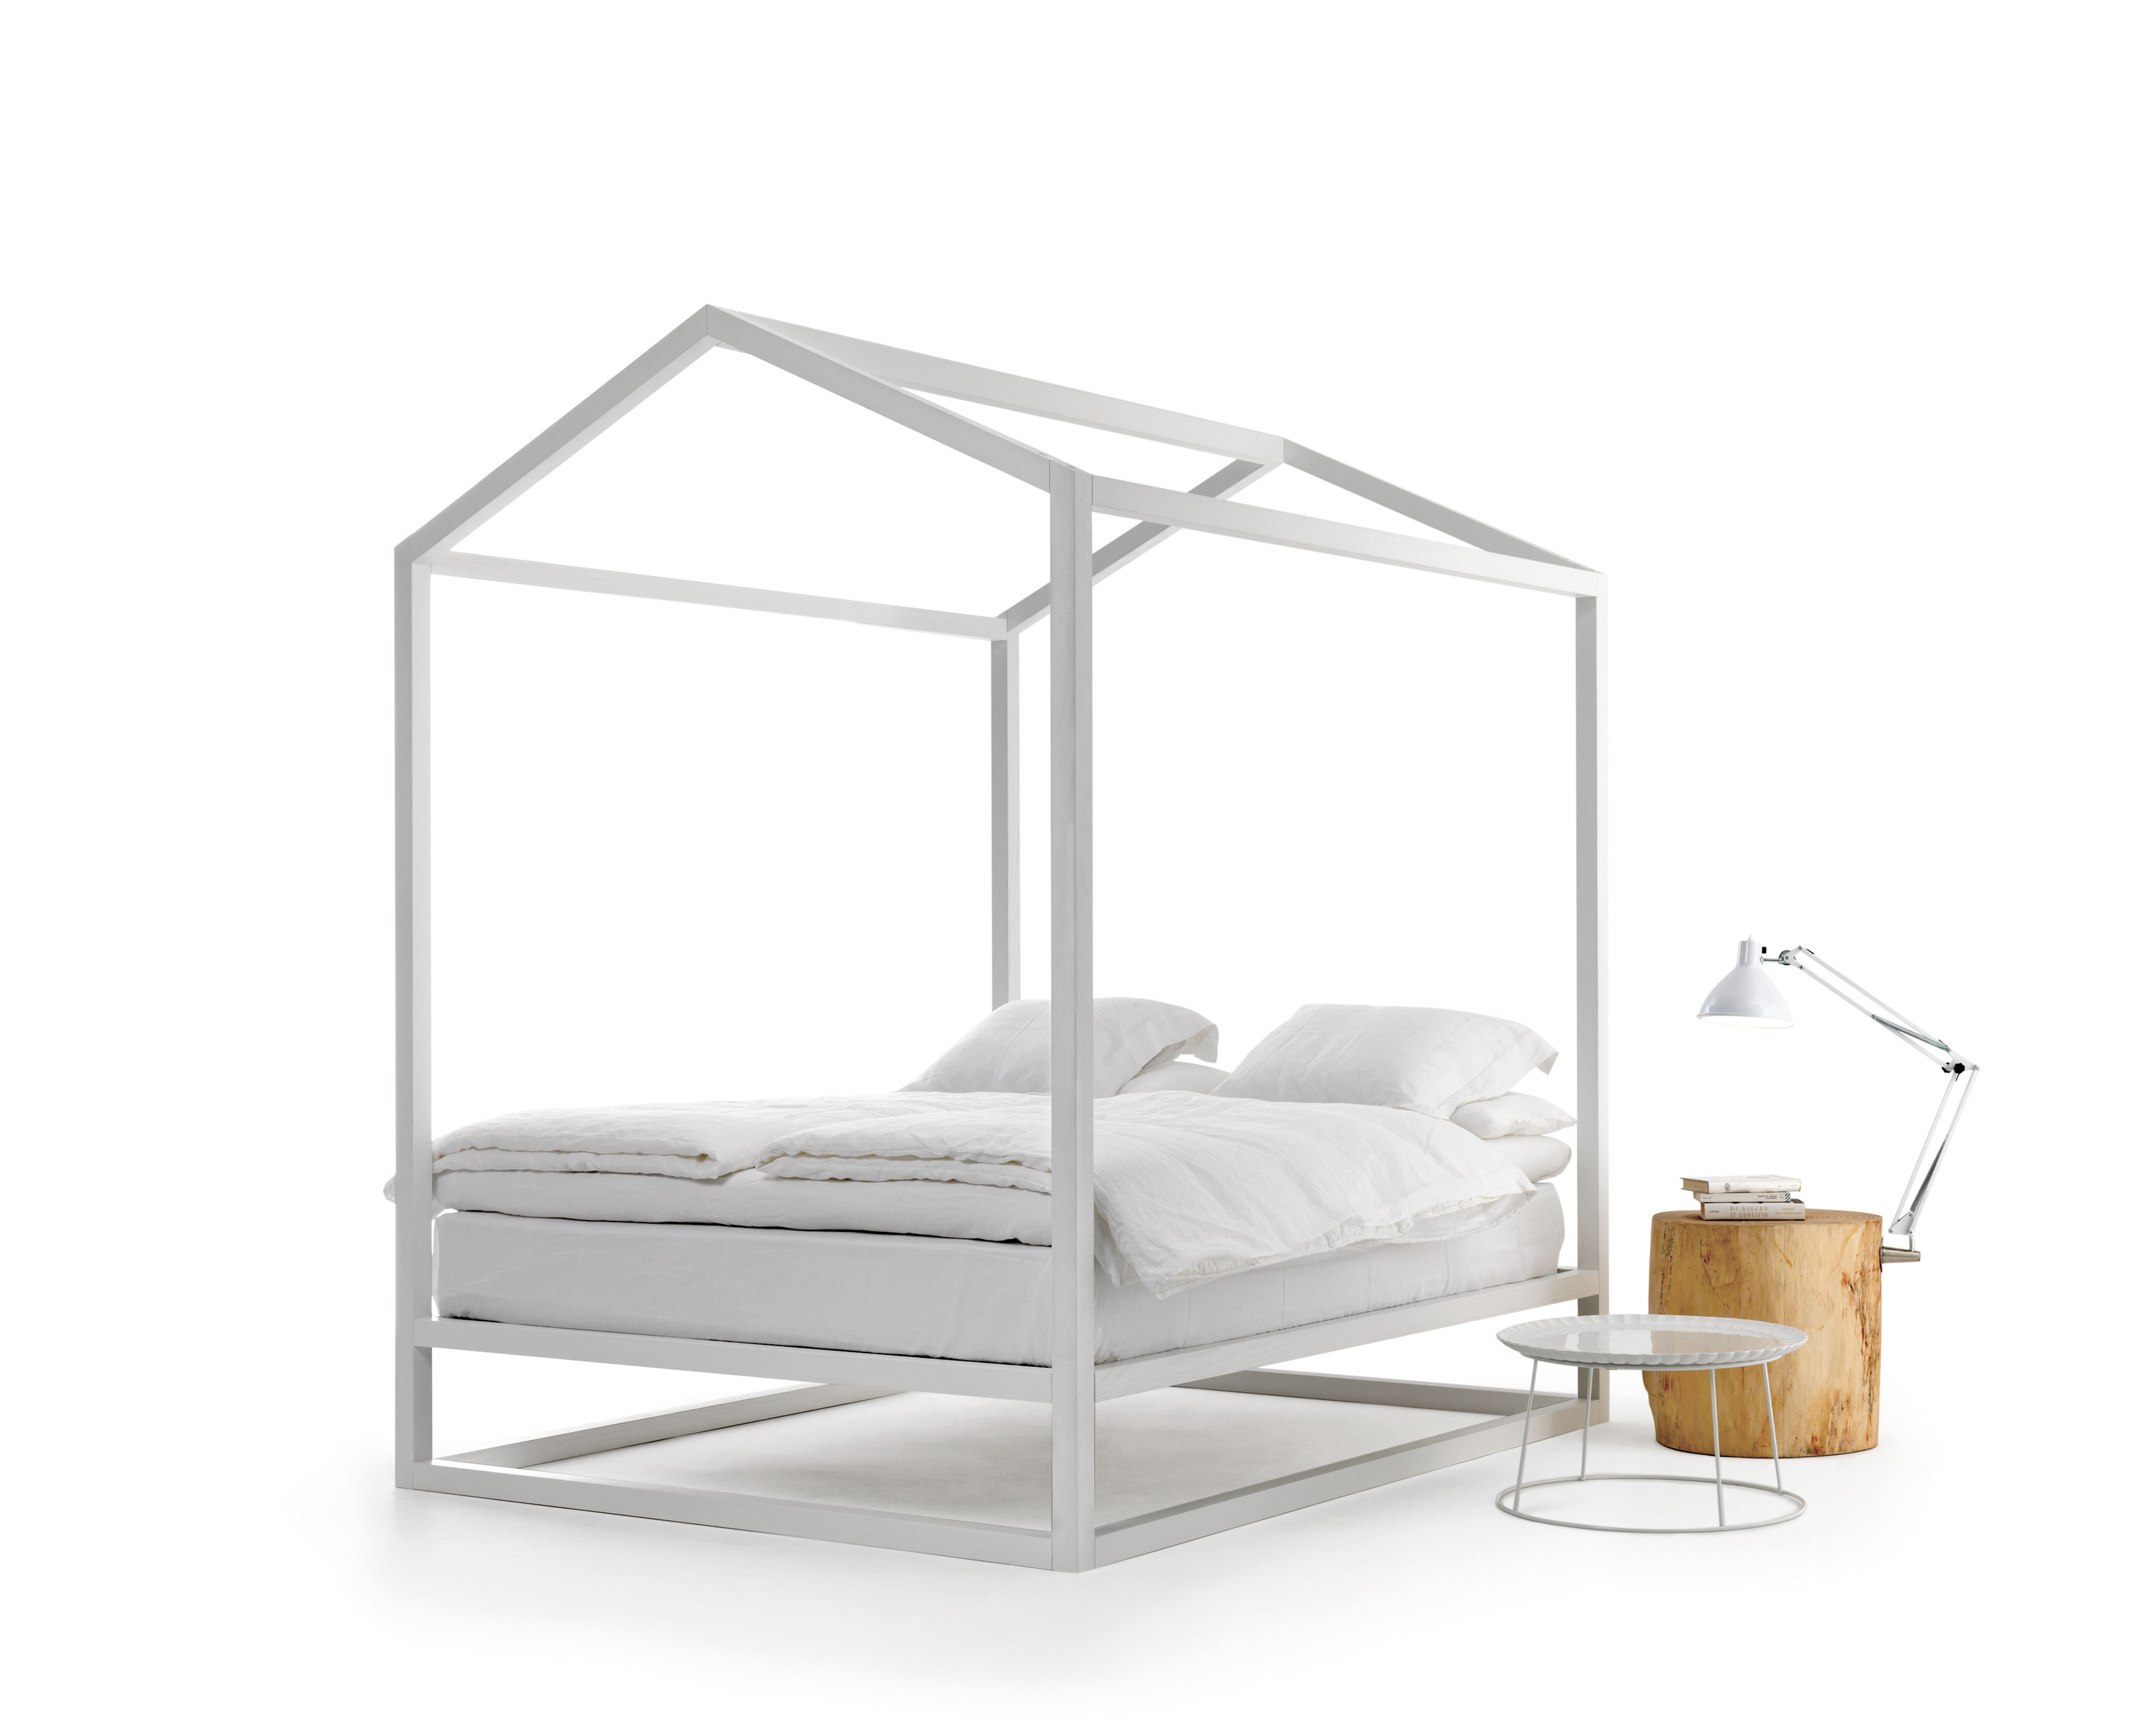 Casetta in canad four poster bed 213 x 183 x h 235 cm for Lit baldaquin